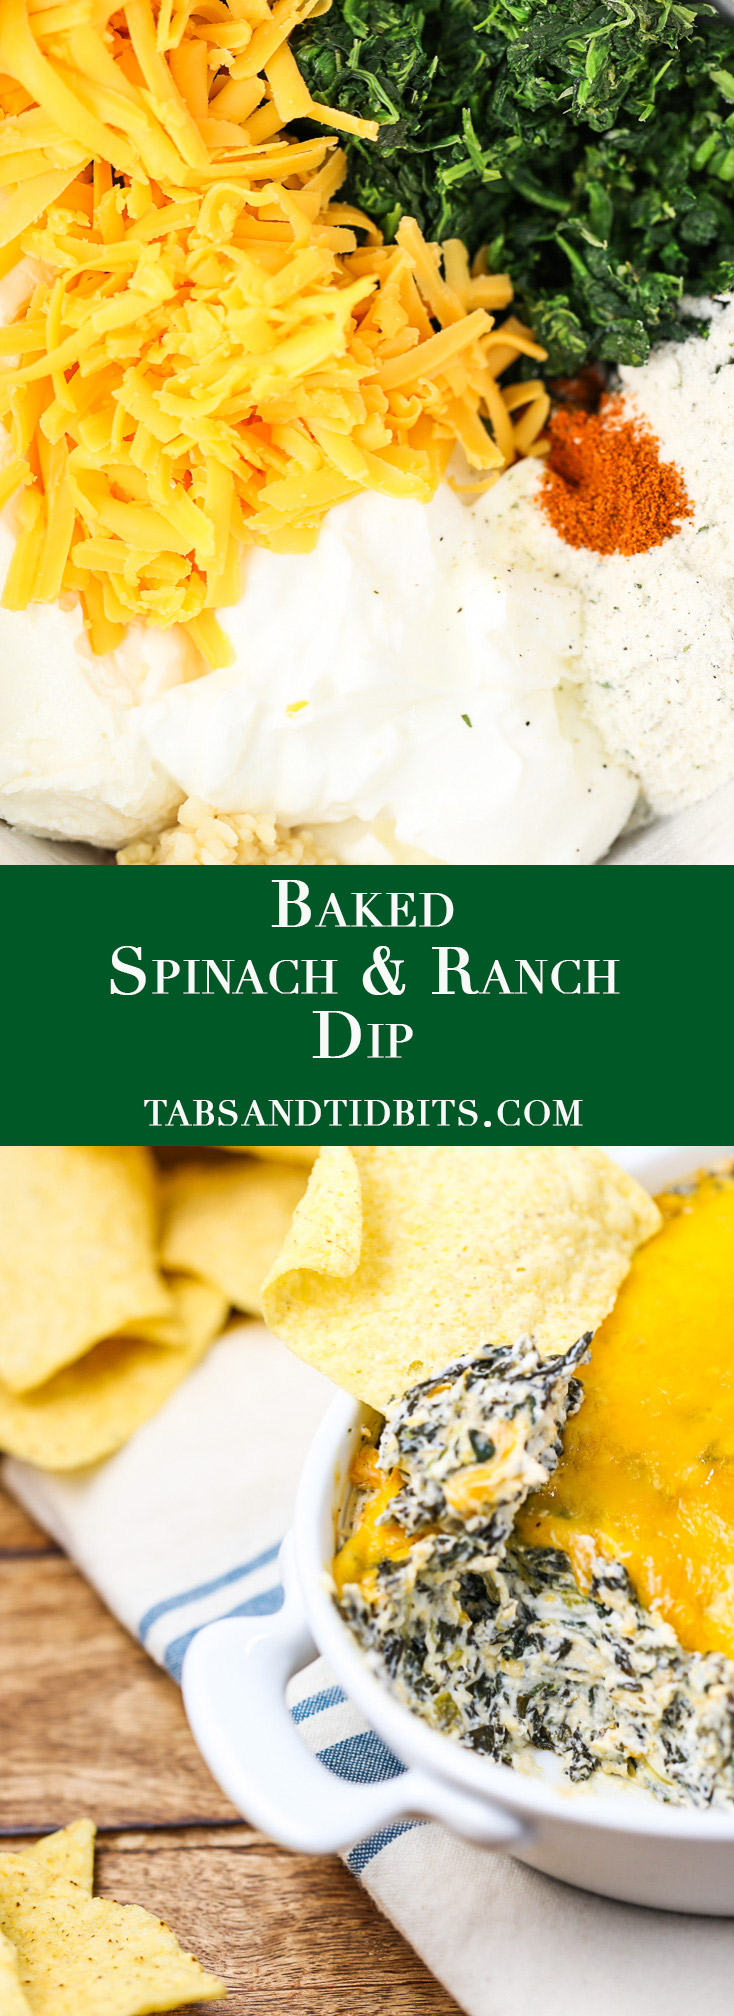 A warm and cheesy spinach dip with the added flavors from ranch seasoning!